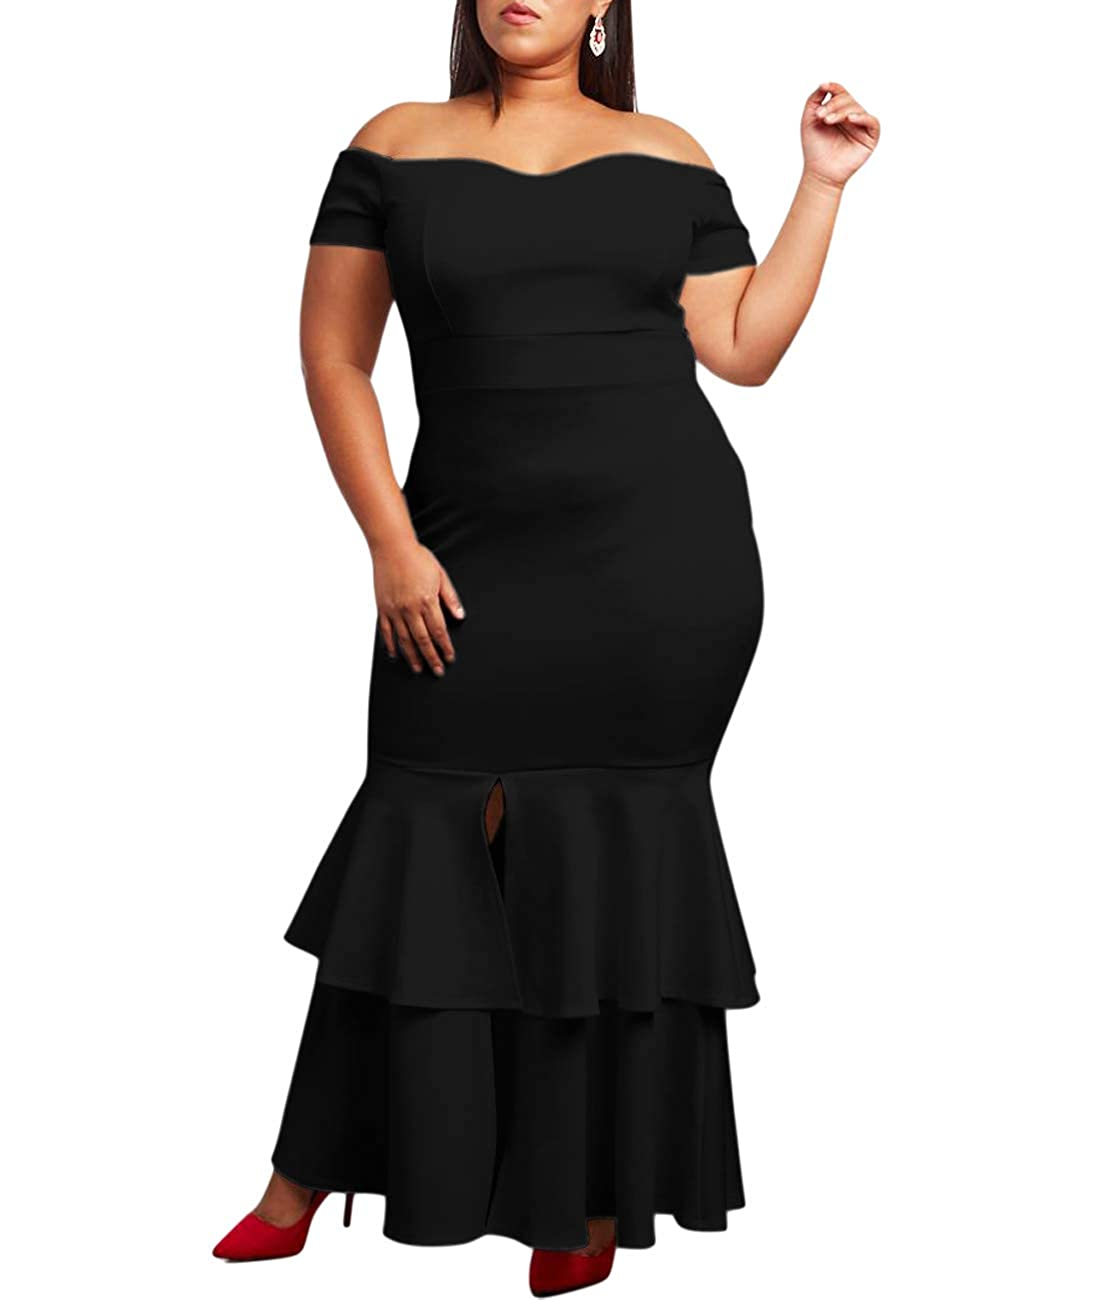 af93890a195 Lalagen Womens Off Shoulder Bodycon Ruffle Mermaid Plus Size Party Maxi  Dress at Amazon Women s Clothing store